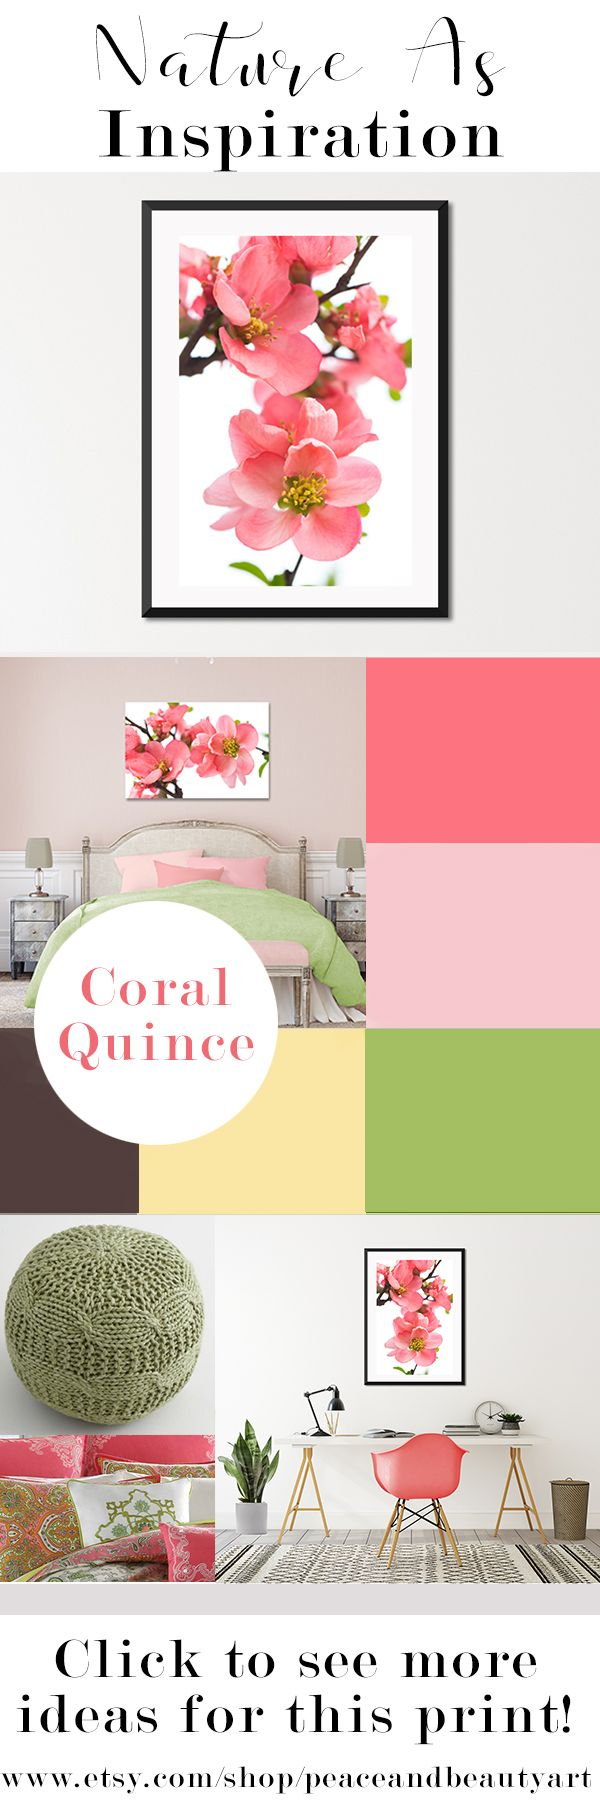 This coral, peach, light pink, white and green, feminine, minimalist, flower art is perfect in a nursery, teen or little girl bedroom, master bedroom, bathroom or office. An extra large wall art print or oversized canvas gives maximum impact and will bring in a fresh pop of color to a variety of decor styles. This piece offers a lot of versatility because it looks great hung vertically or horizontally. Coral, pink, green, yellow, brown, color palette